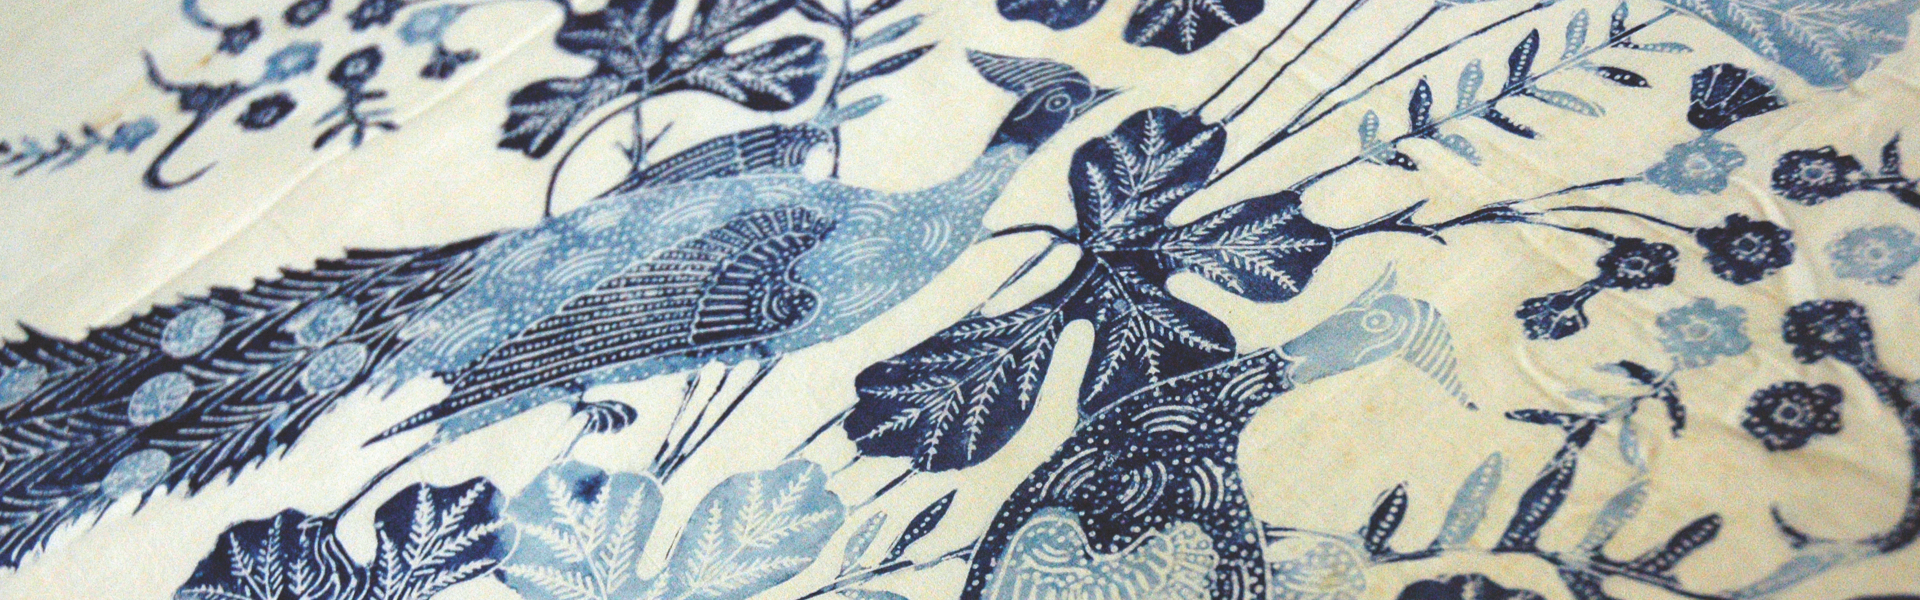 Blue and white textile with birds